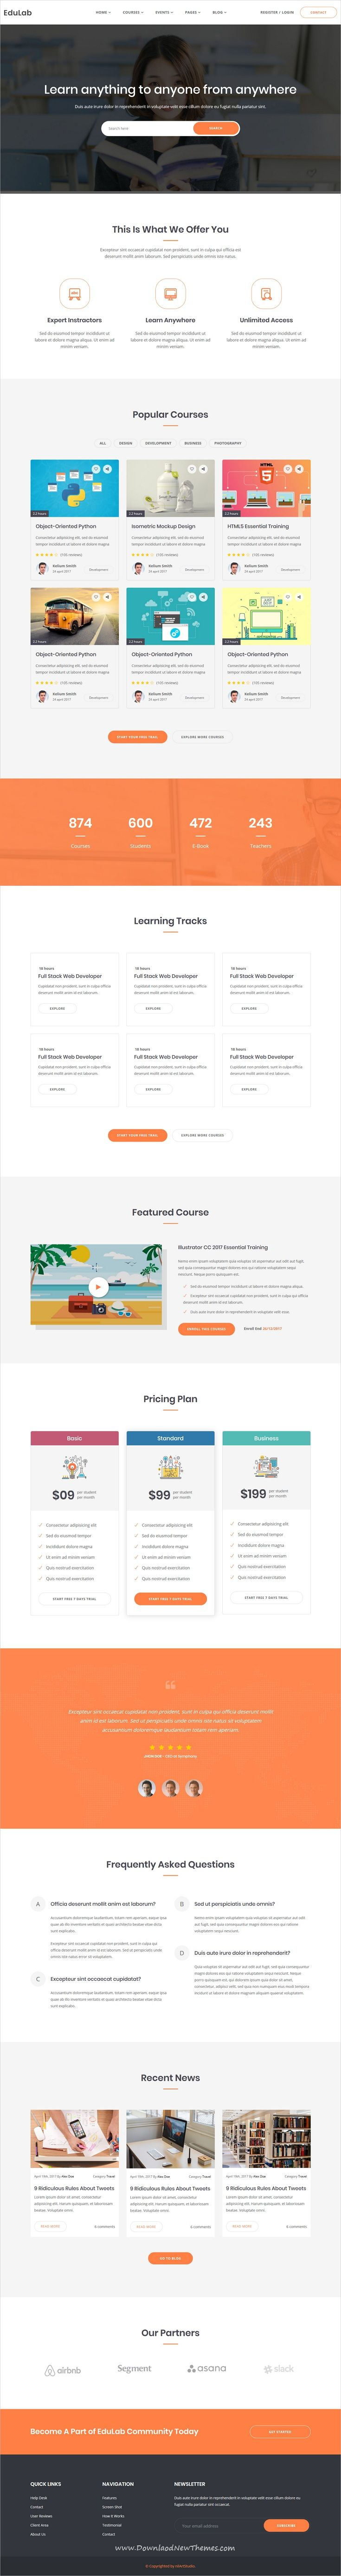 edulab is clean and modern design 2in1 responsive bootstrap html5